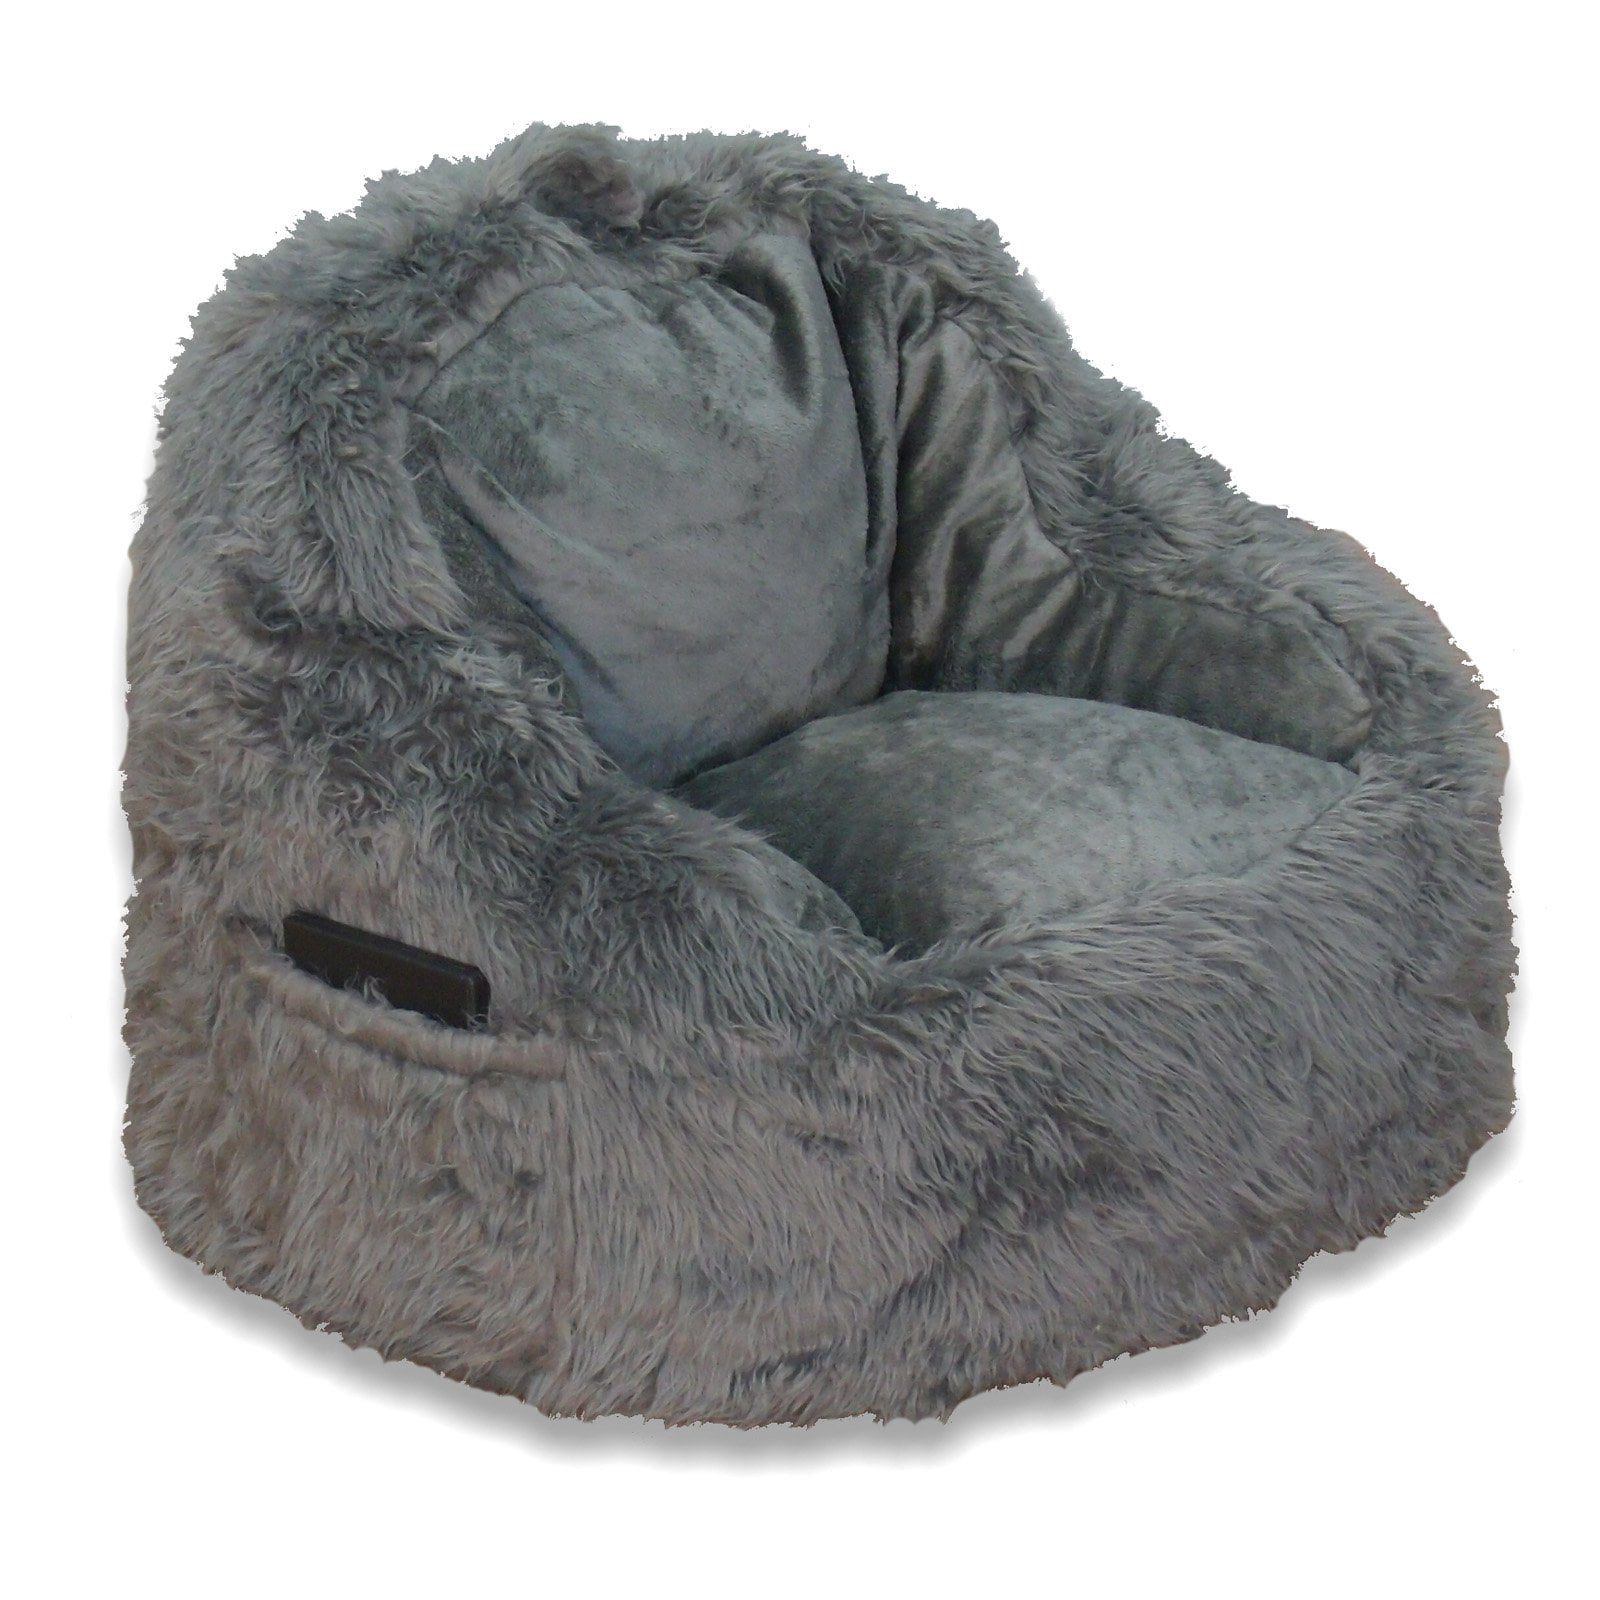 Marvelous Structured Tablet Fur Bean Bag Chair Available In Multiple Colors Walmart Com Evergreenethics Interior Chair Design Evergreenethicsorg